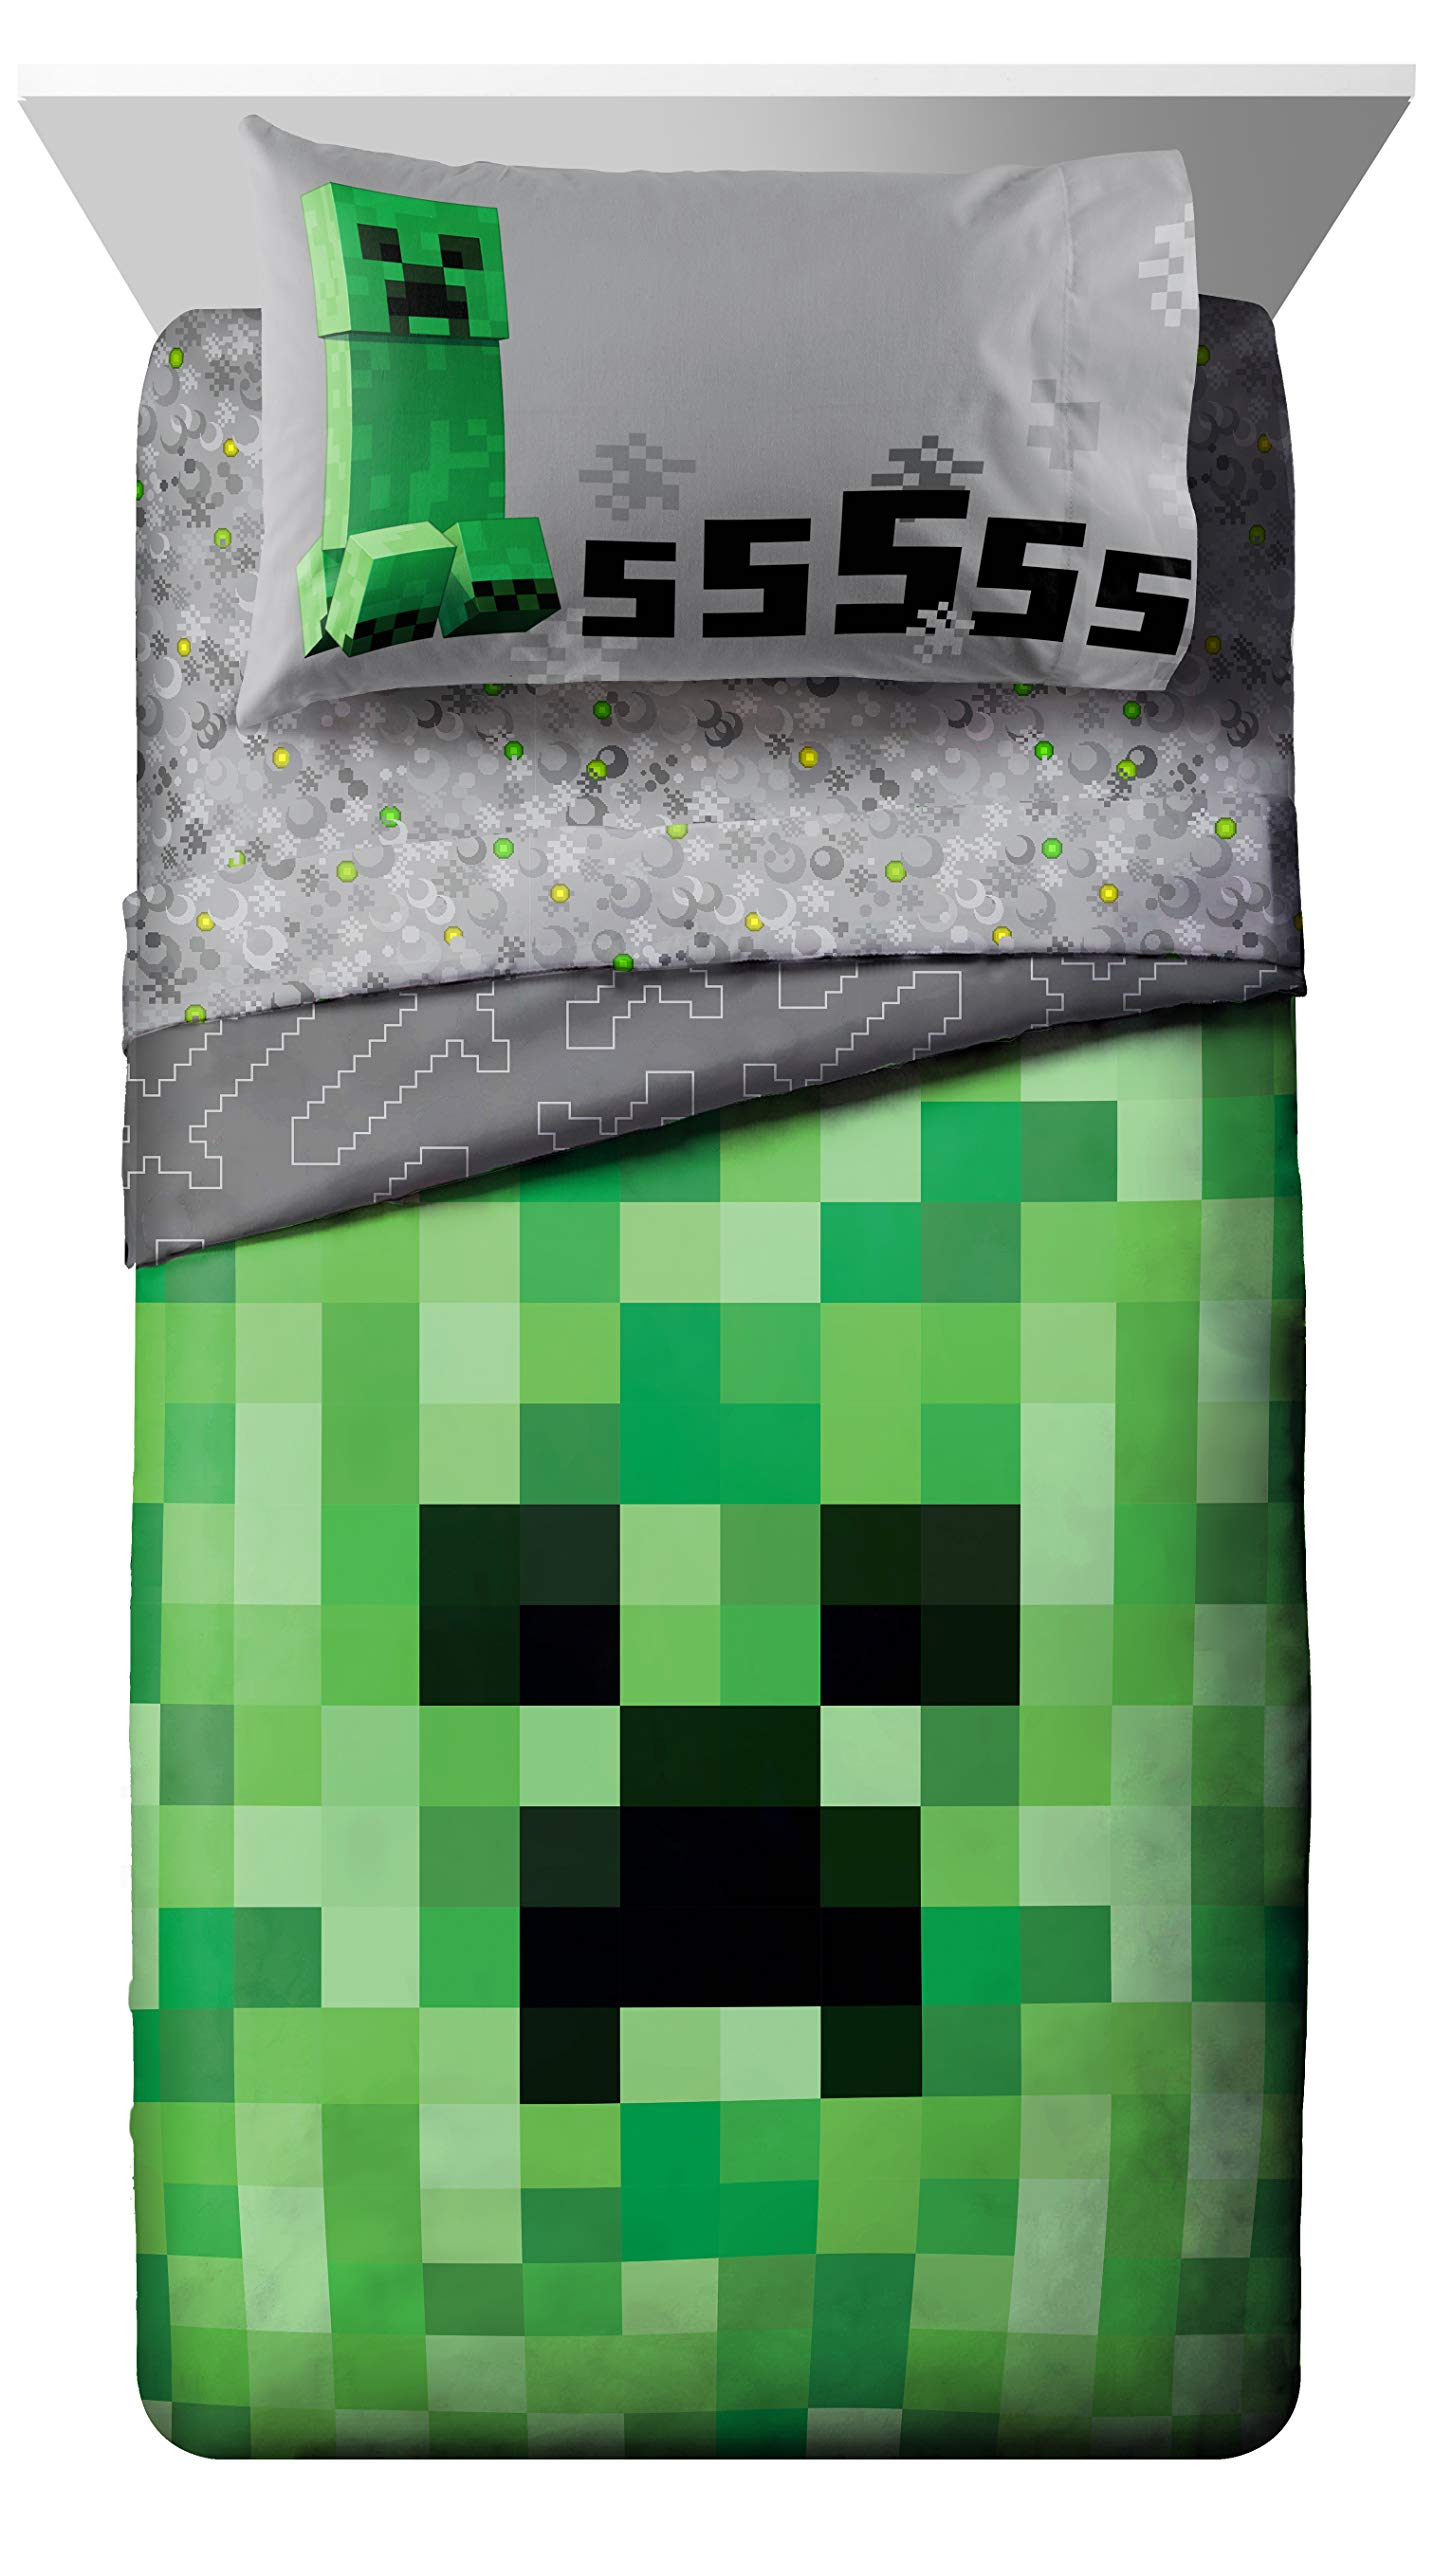 Jay Franco Minecraft Creeper 5 Piece Full Bed Set - Includes Reversible Comforter & Sheet Set - Super Soft Fade Resistant Microfiber - (Official Minecraft Product) by Jay Franco (Image #2)